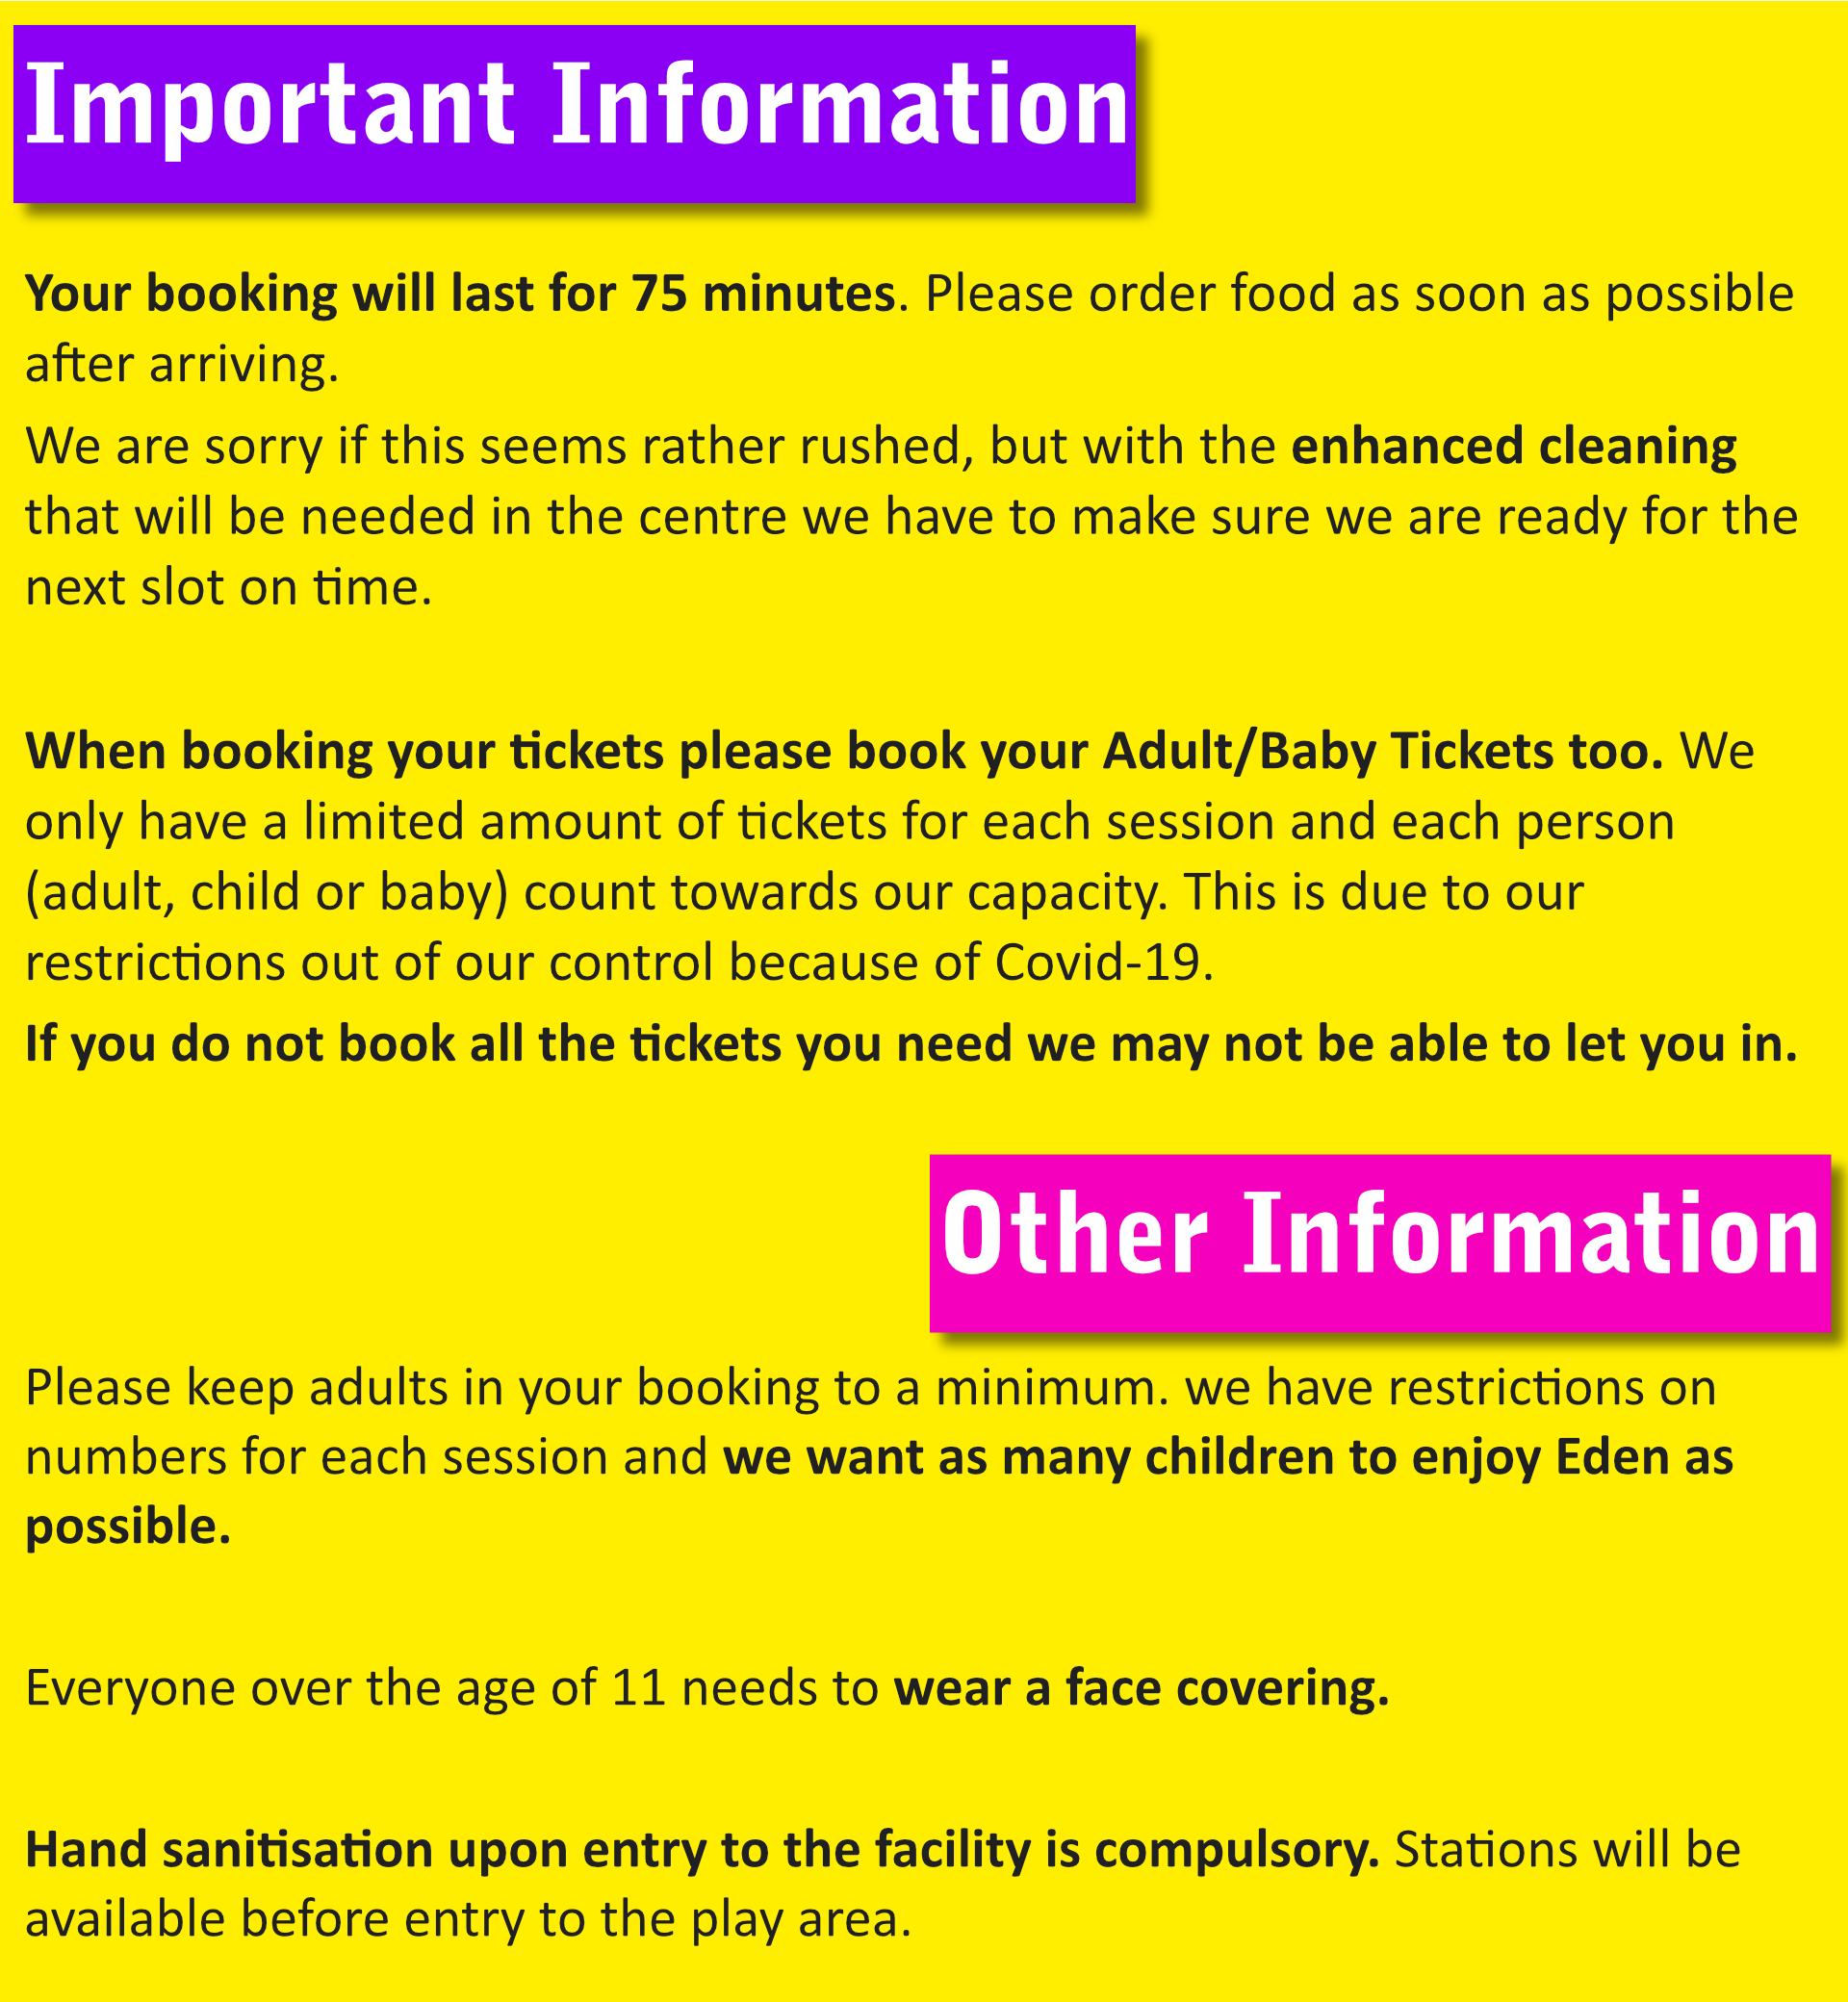 Information about Booking